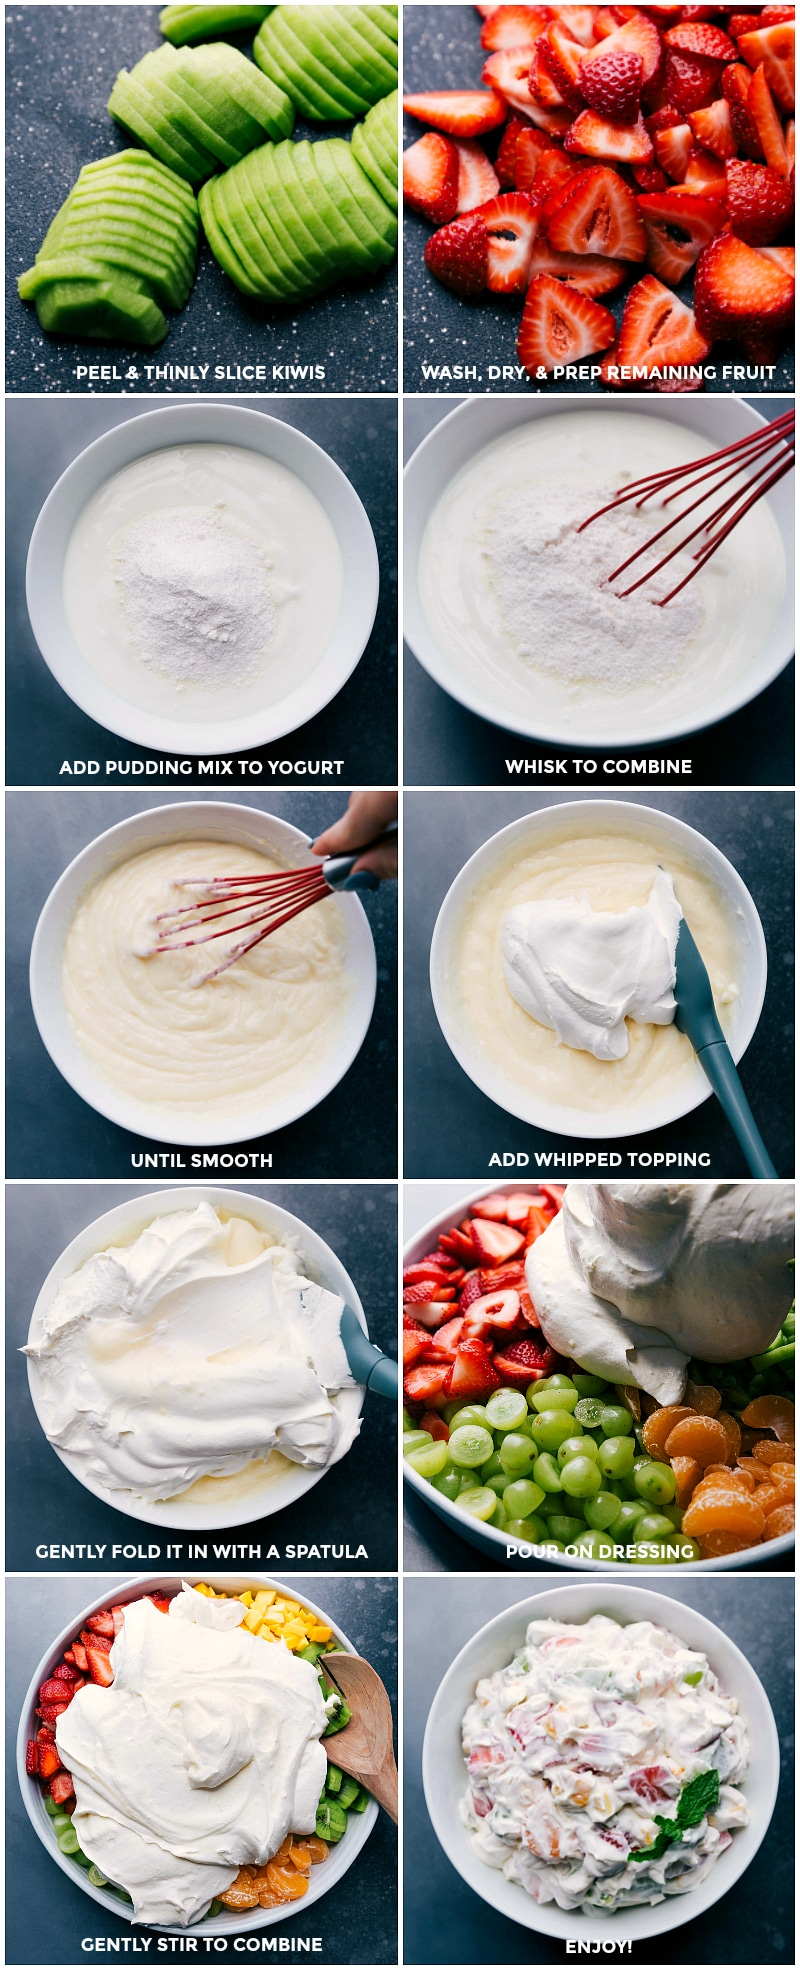 Process shots-- images of the fruit being sliced; the creamy mixture being made; and it all being mixed together.